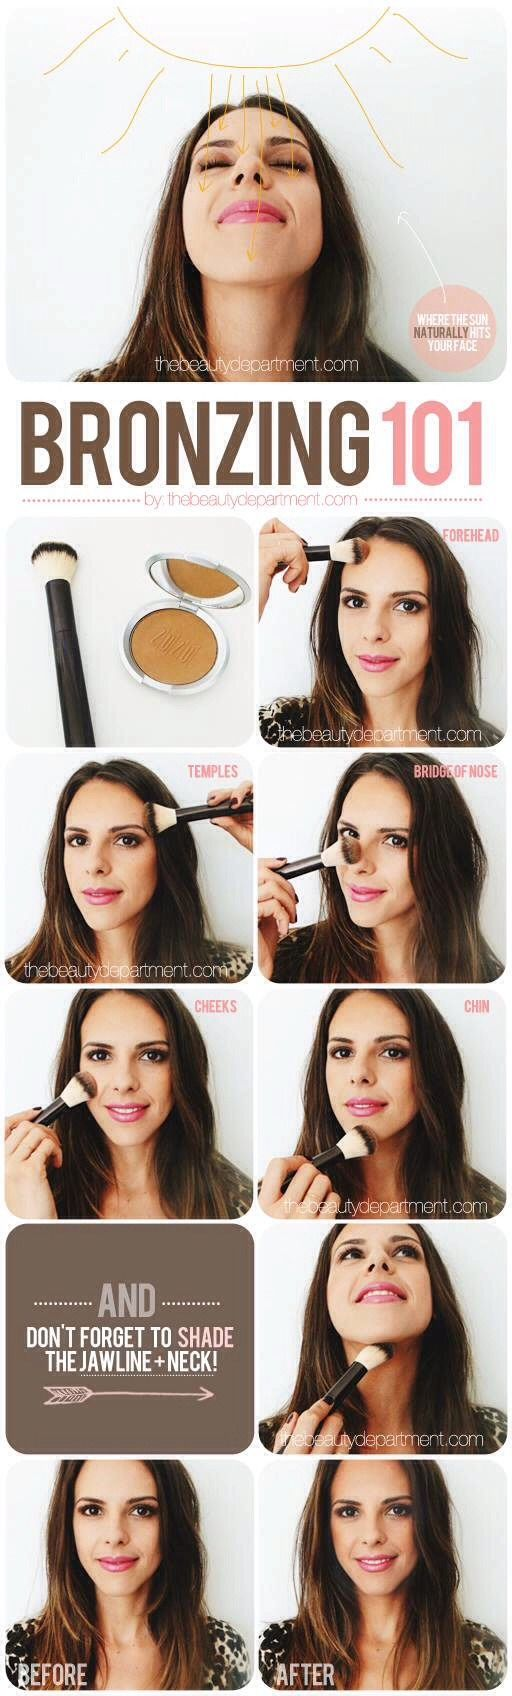 How to apply bronzer. Need a good bronzer? Head over to my website www.youniqueproducts.com/tamaradobias